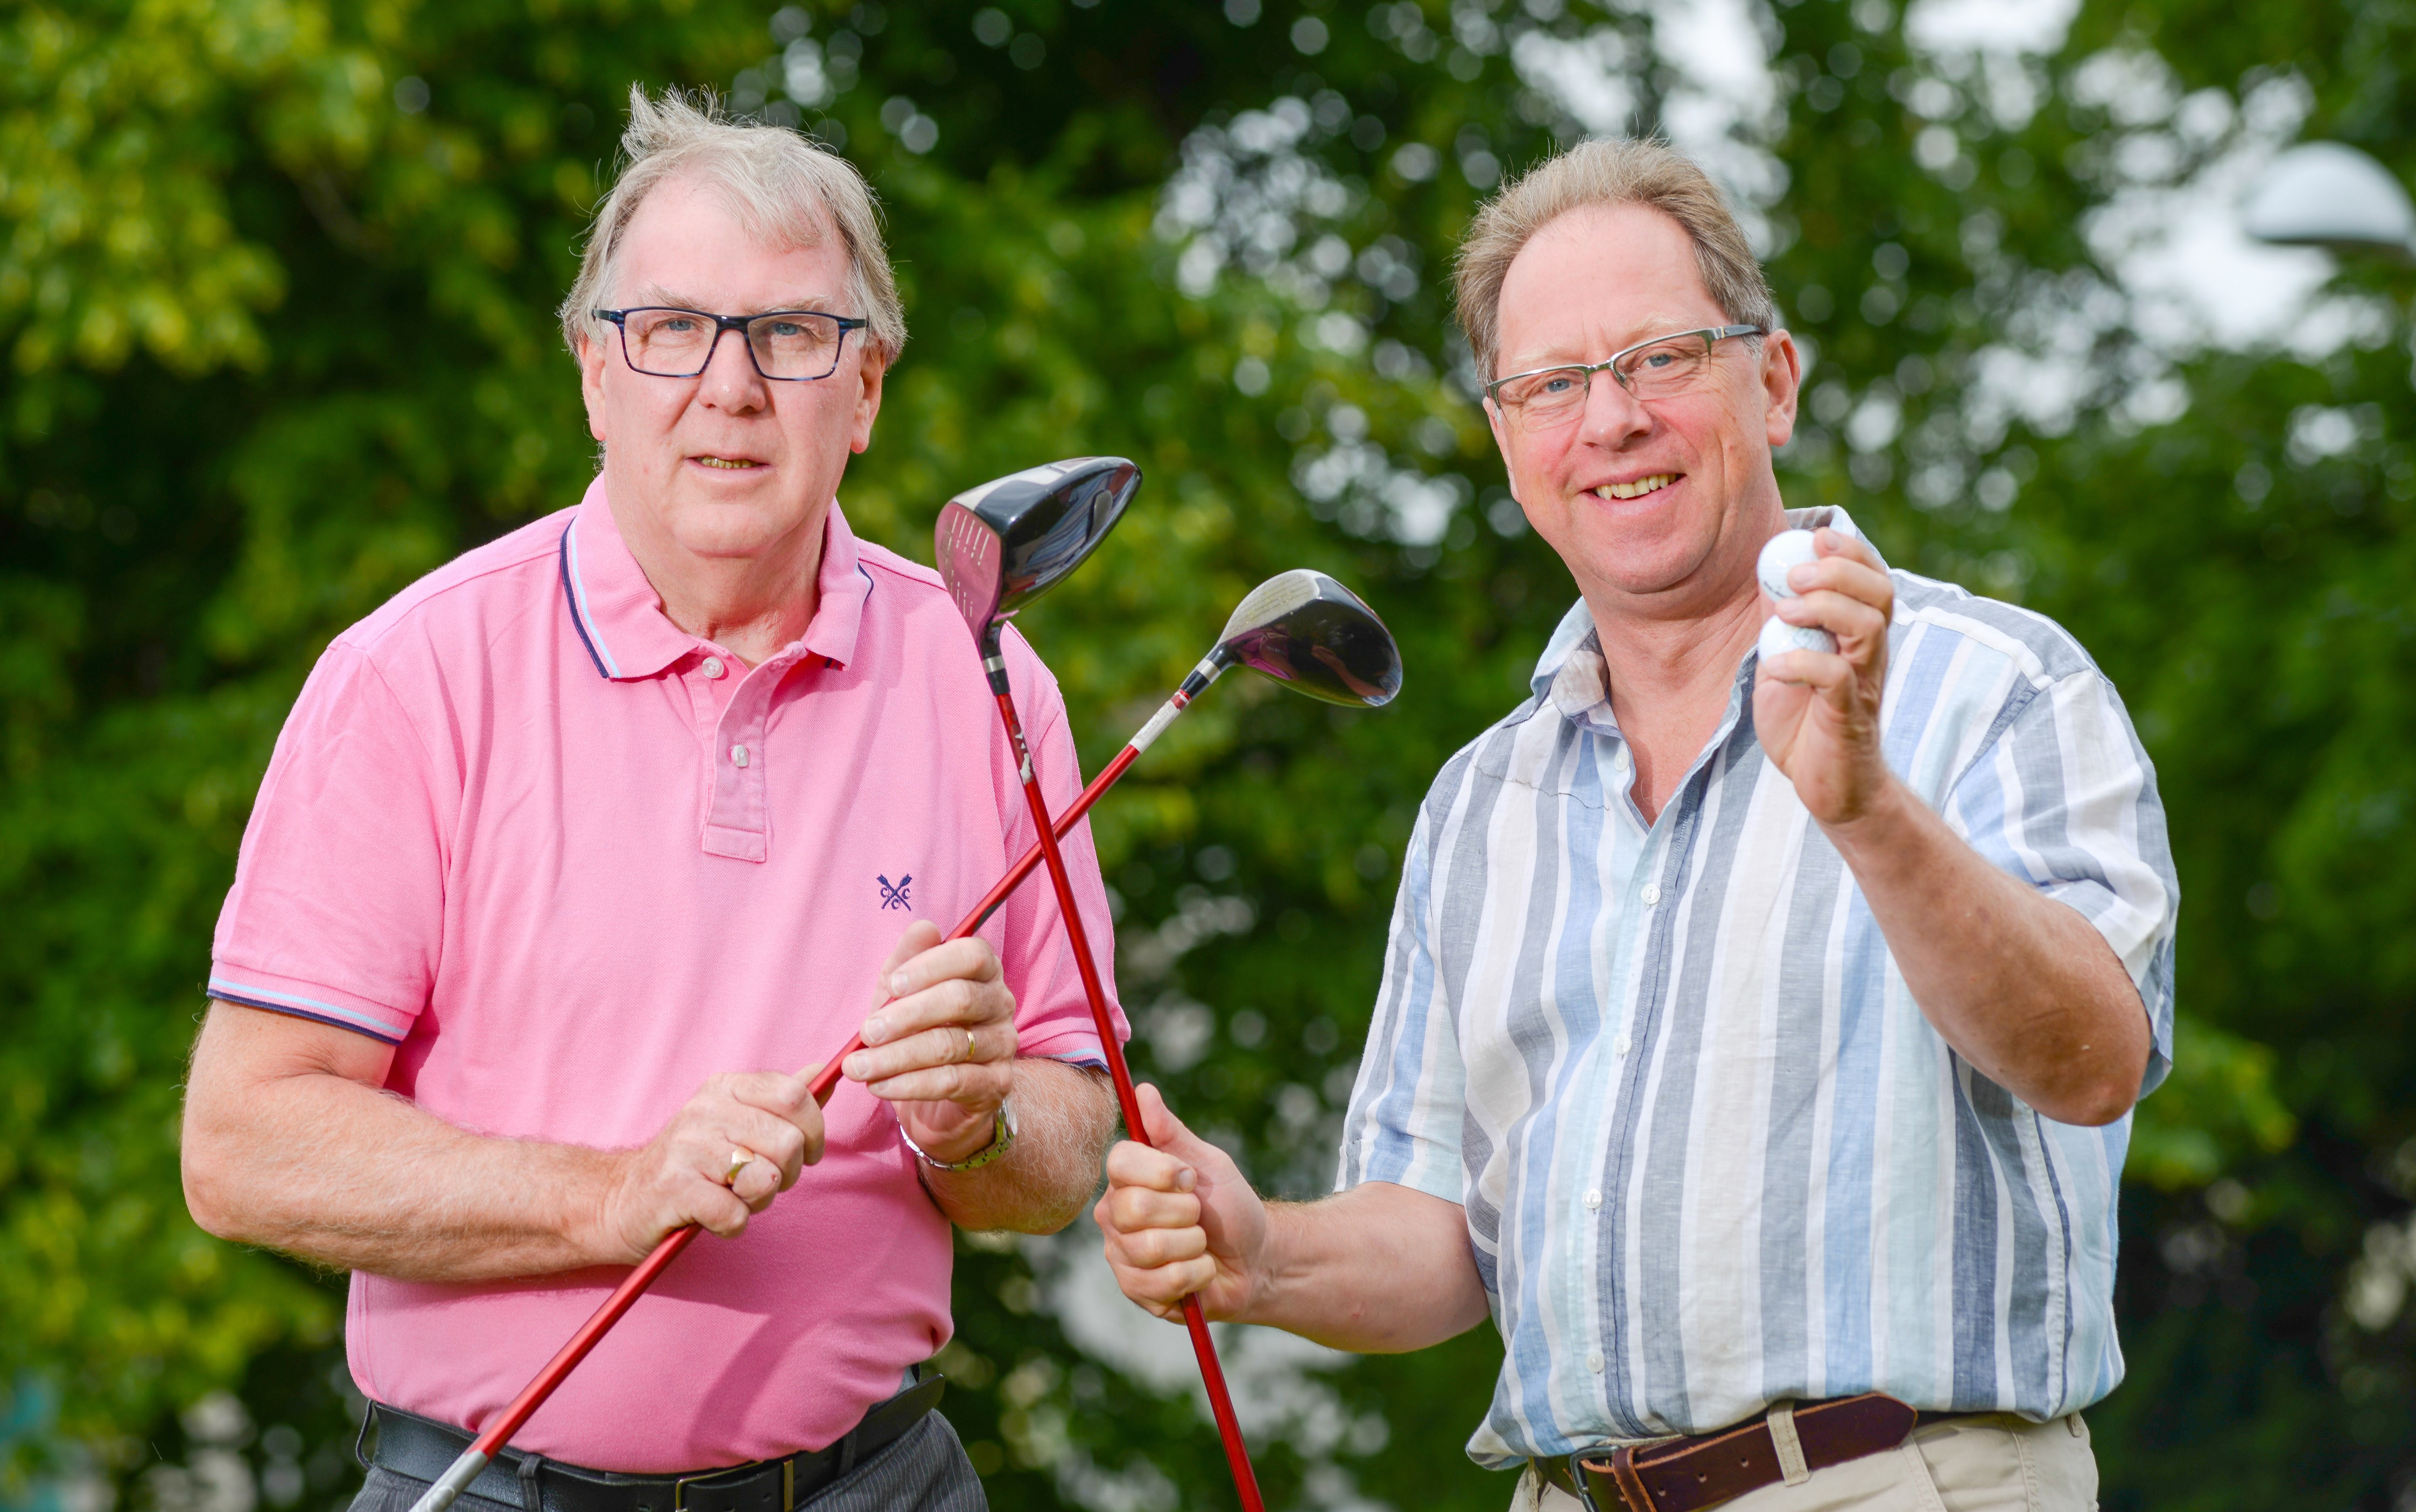 Participants sought for charity golf day